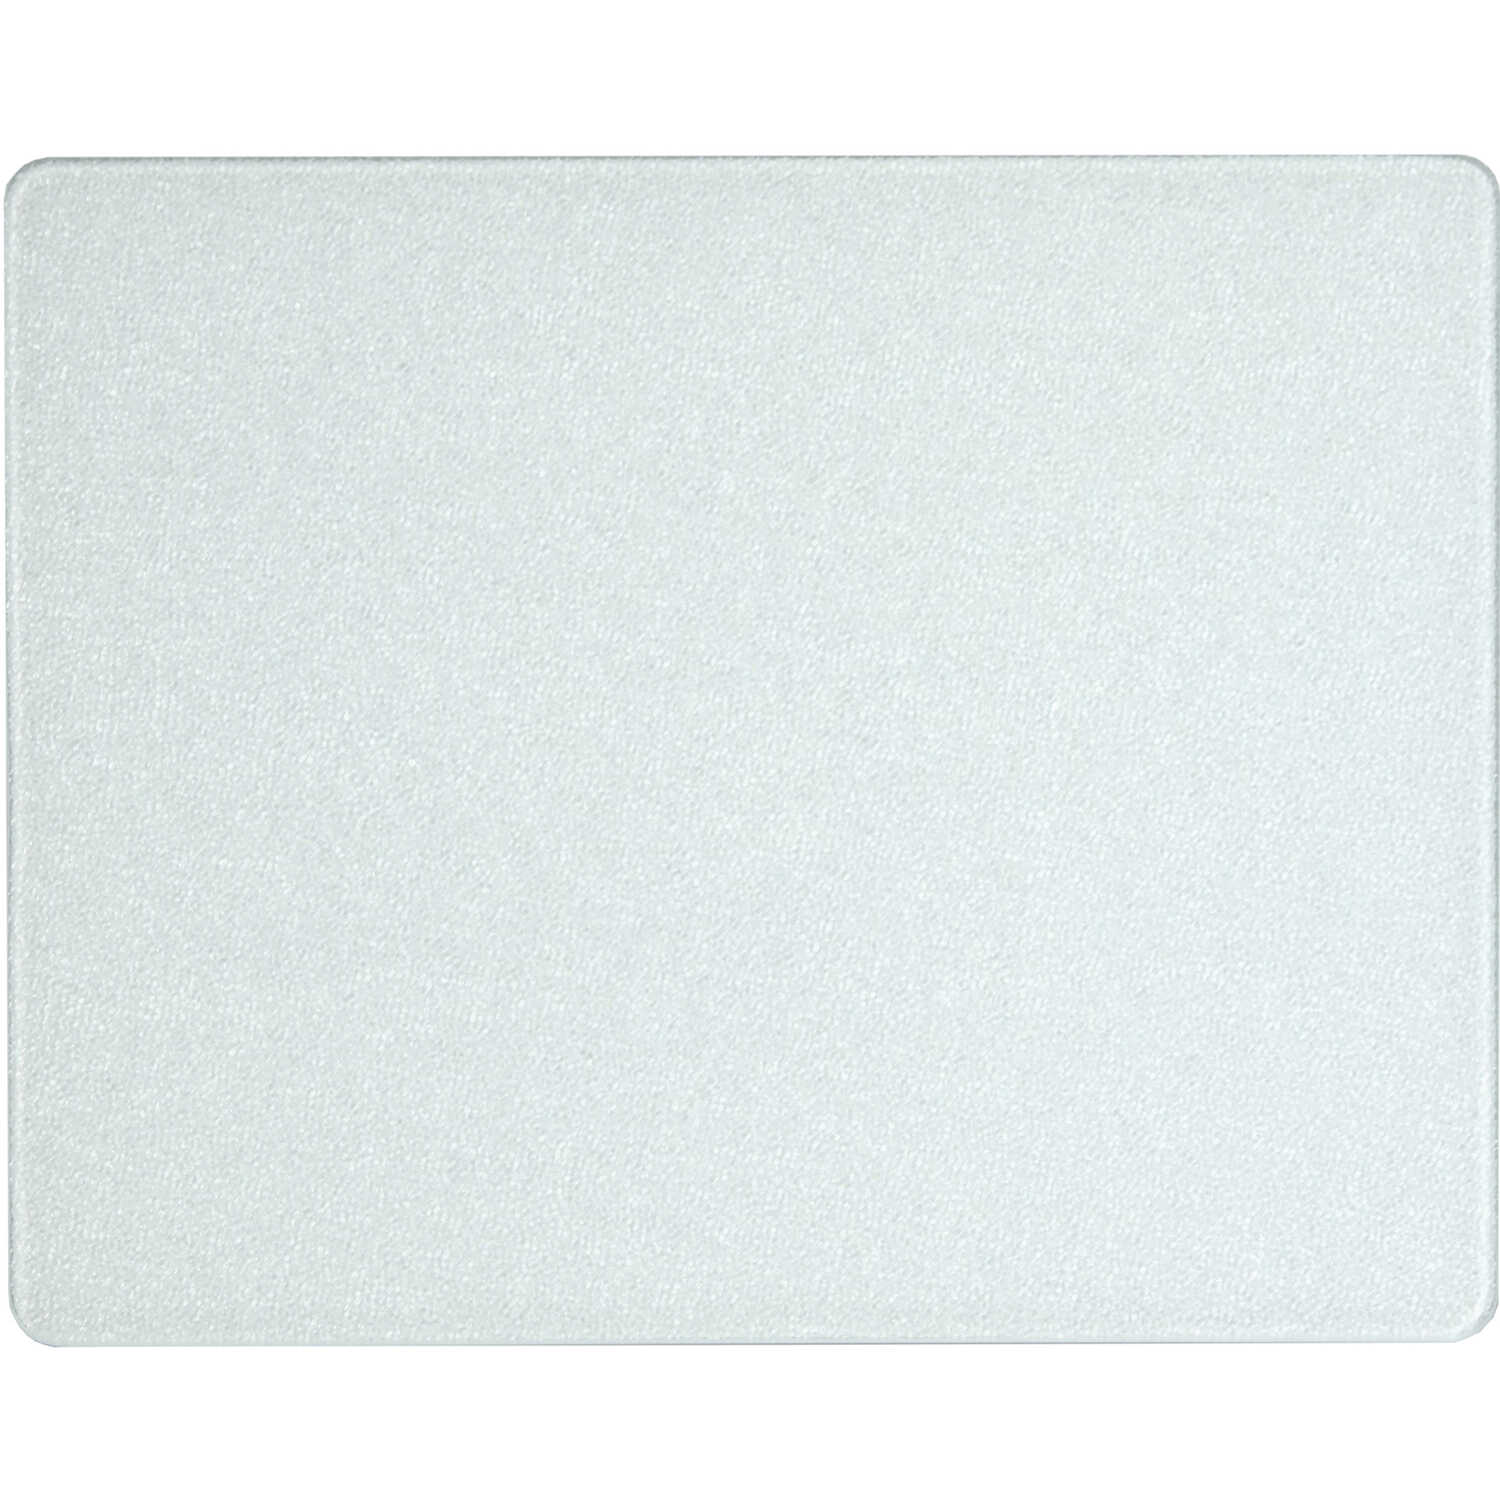 Corelle 12 In W X 15 L Textured White Glass Cutting Board Ace Battery Eliminator Circuit Perspex Mounting Plate Us